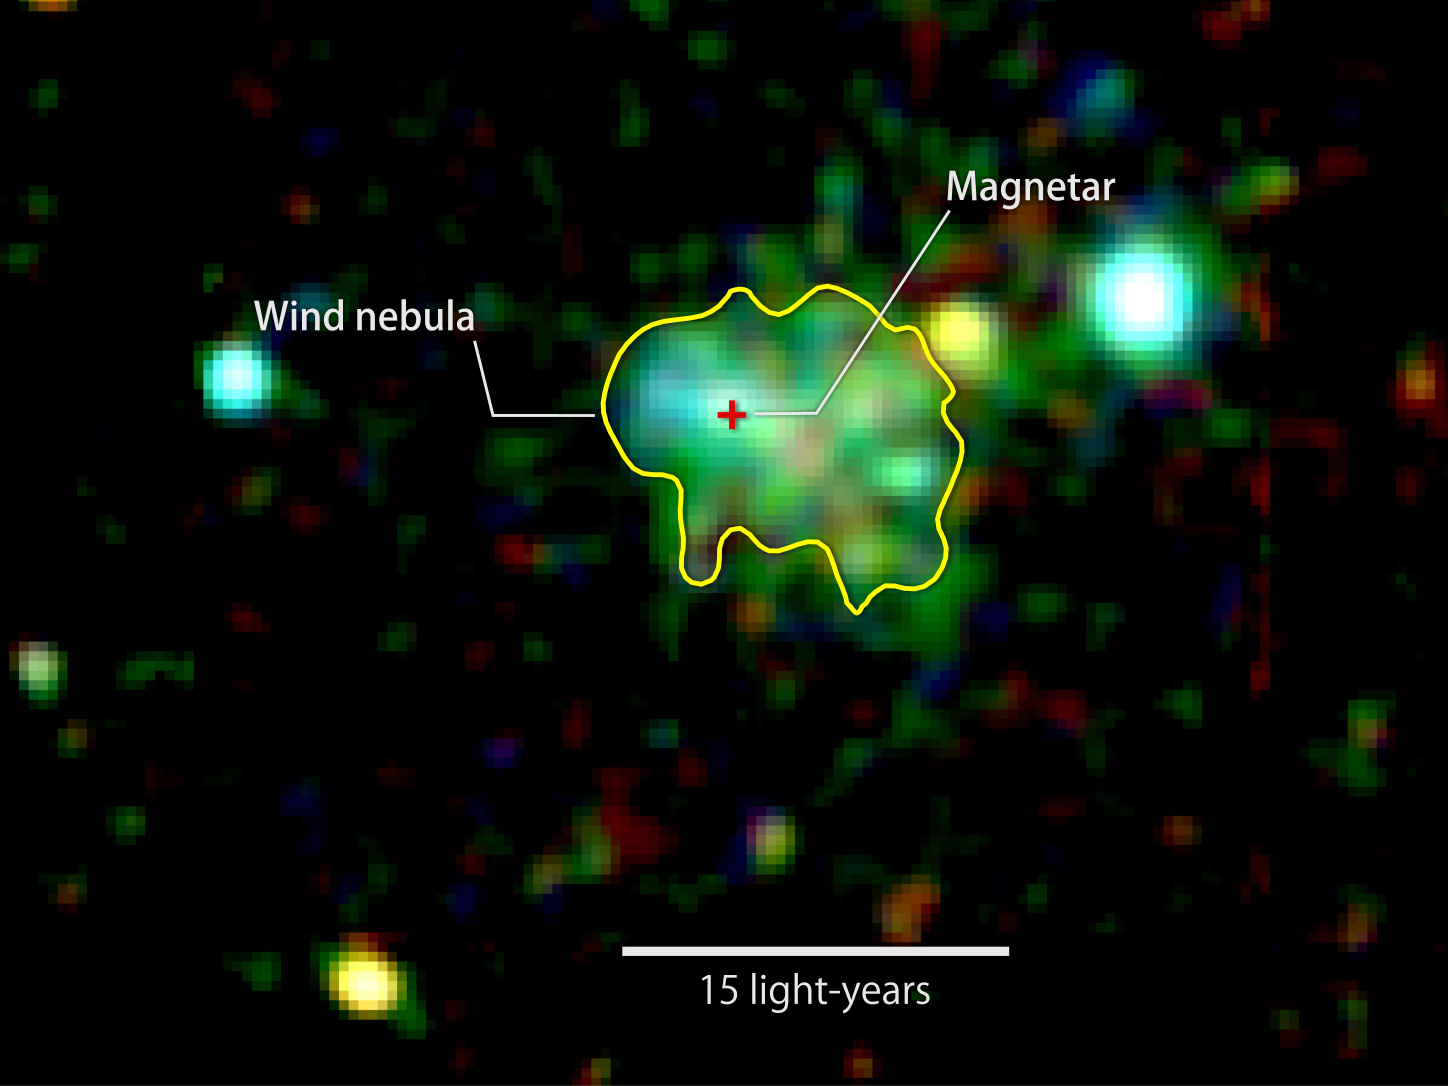 This X-ray image shows extended emission around a source known as Swift J1834.9-0846, a rare ultra-magnetic neutron star called a magnetar. The glow arises from a cloud of fast-moving particles produced by the neutron star and corralled around it. Colour indicates X-ray energies, with 2,000-3,000 electron volts (eV) in red, 3,000-4,500 eV in green, and 5,000 to 10,000 eV in blue. The image combines observations by the European Space Agency's XMM-Newton spacecraft taken on 16 March and 16 October 2014. Image credits: ESA/XMM-Newton/Younes et al. 2016.